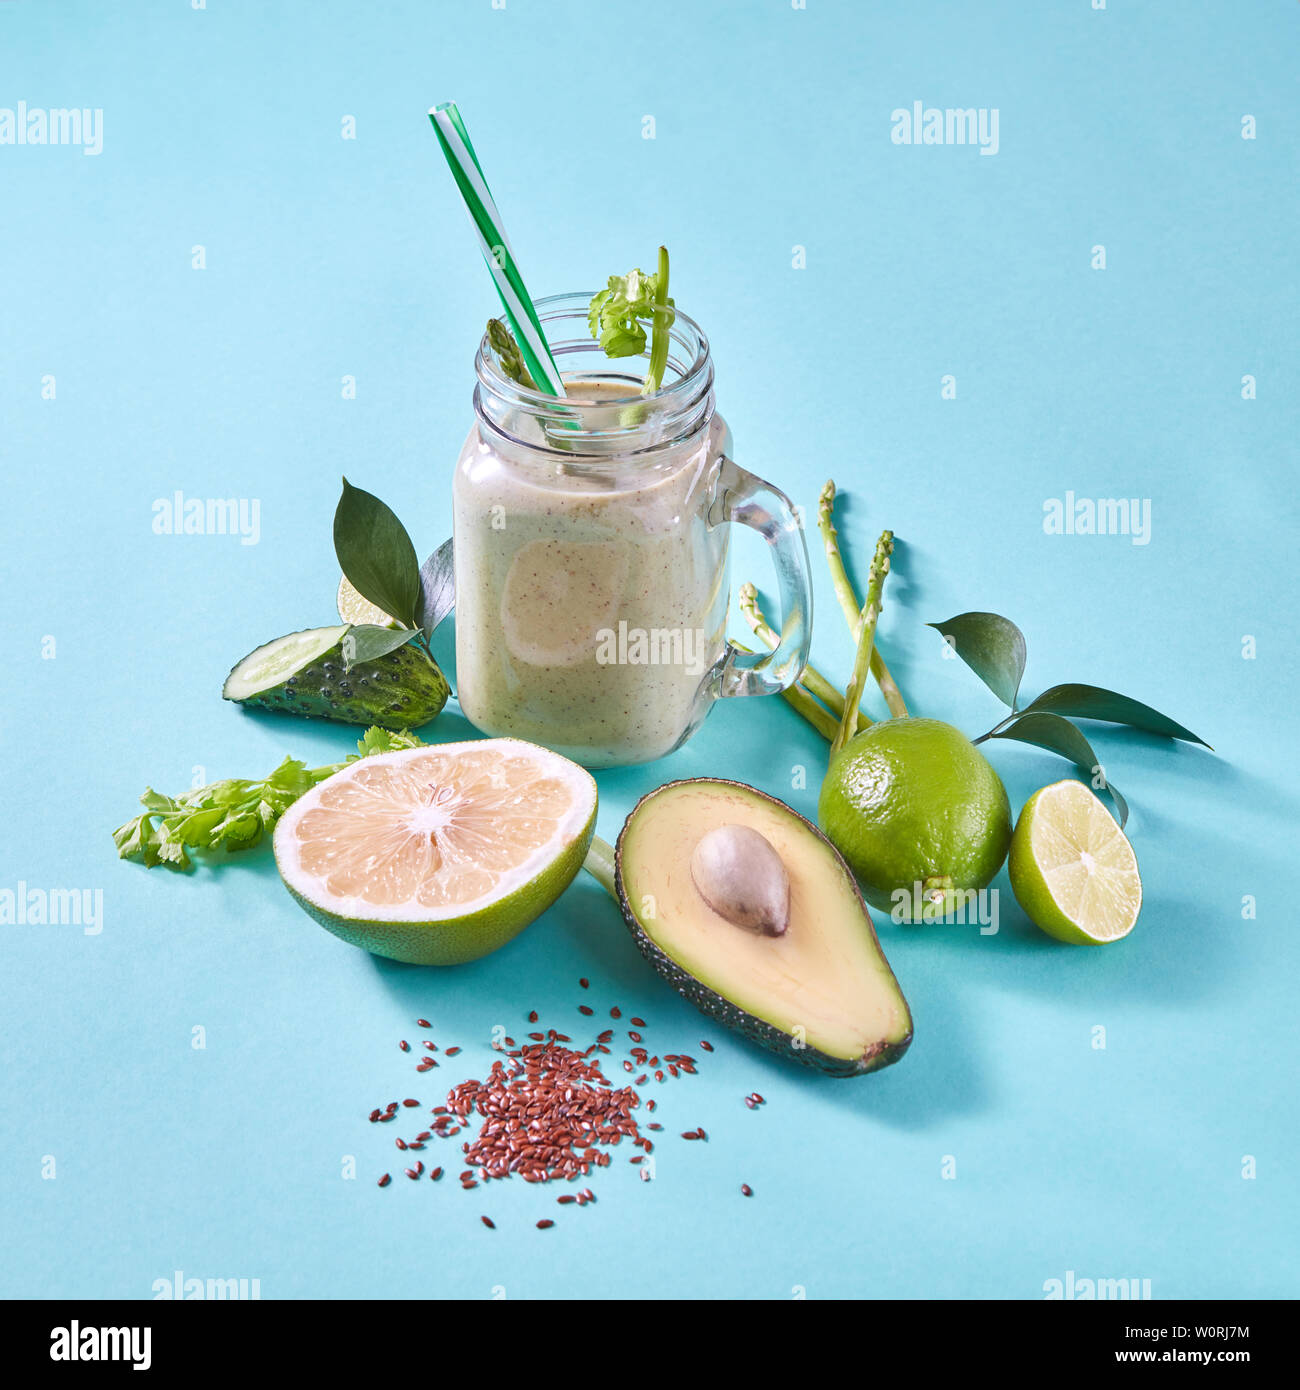 healthy diet,smoothie,clean eating - Stock Image